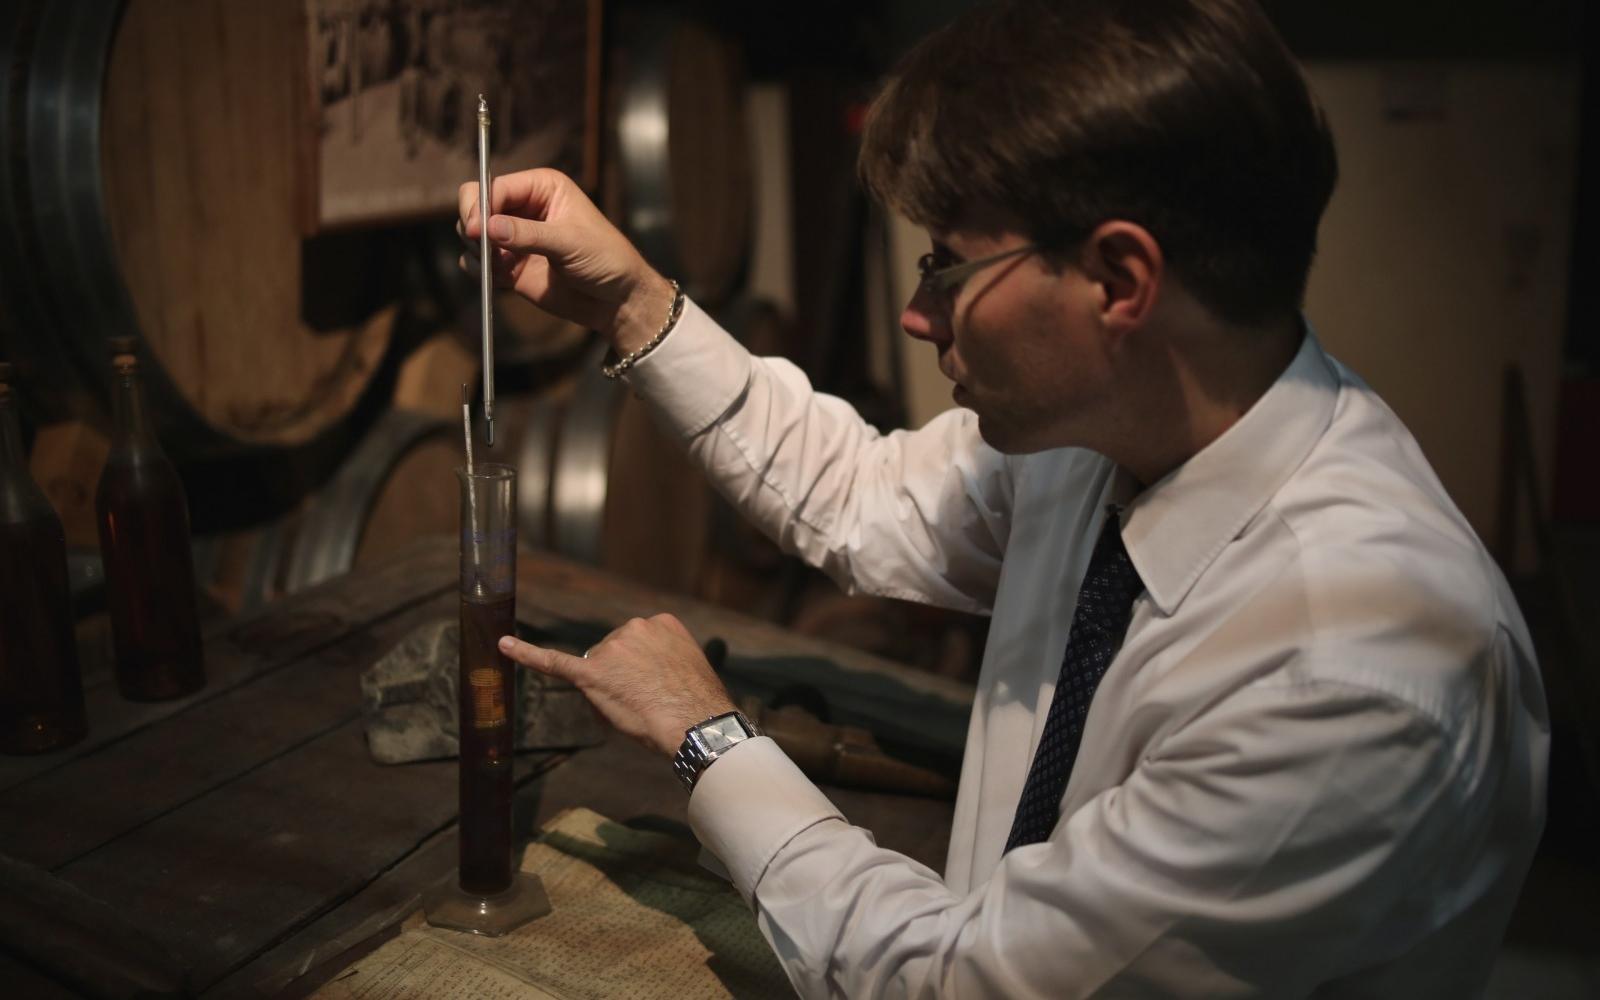 Measuring alcohol content with the traditional manual method, Louis Royer